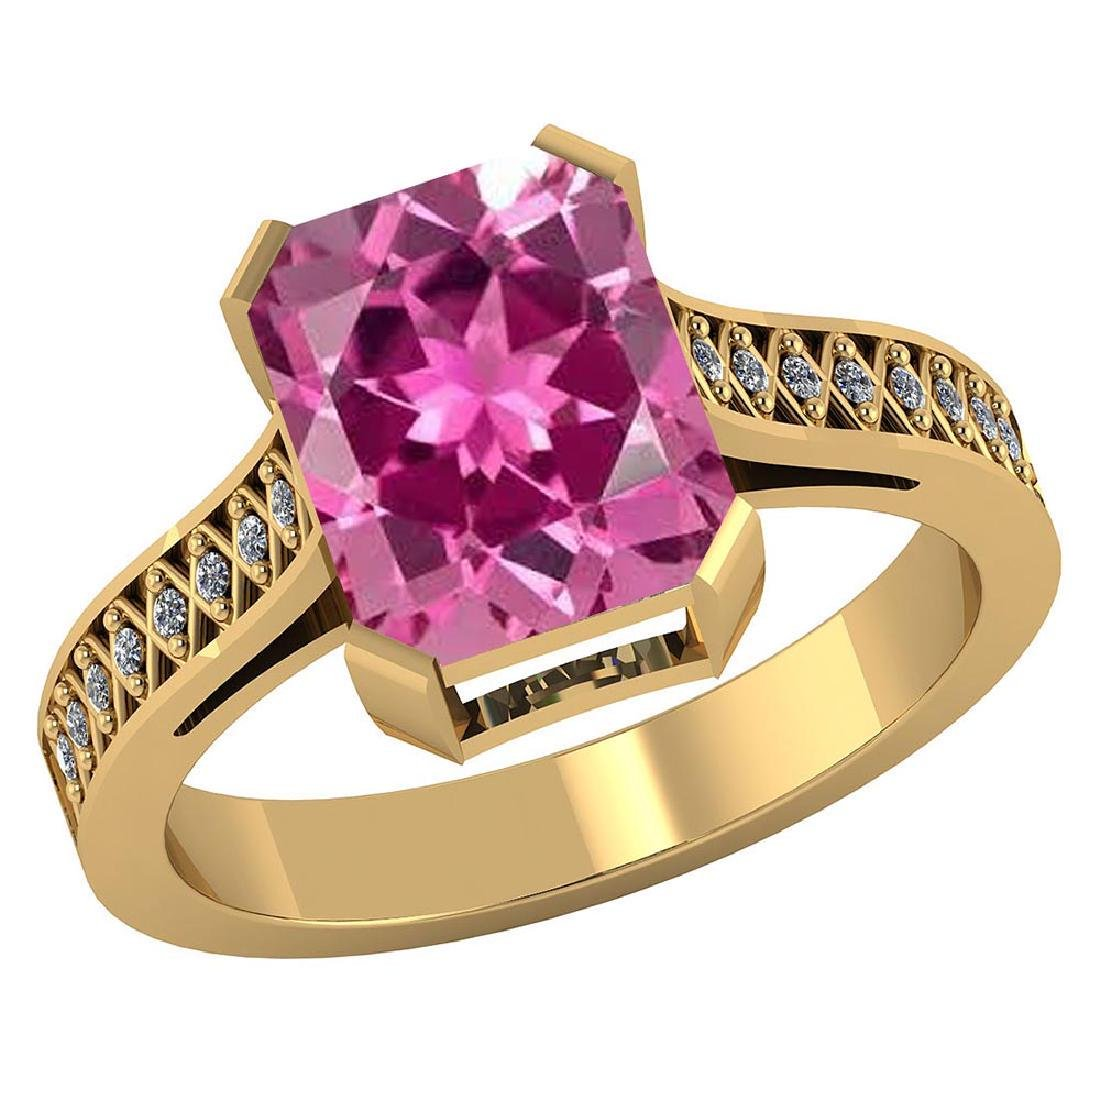 Certified 3.15 CTW Genuine Pink Tourmaline And Diamond